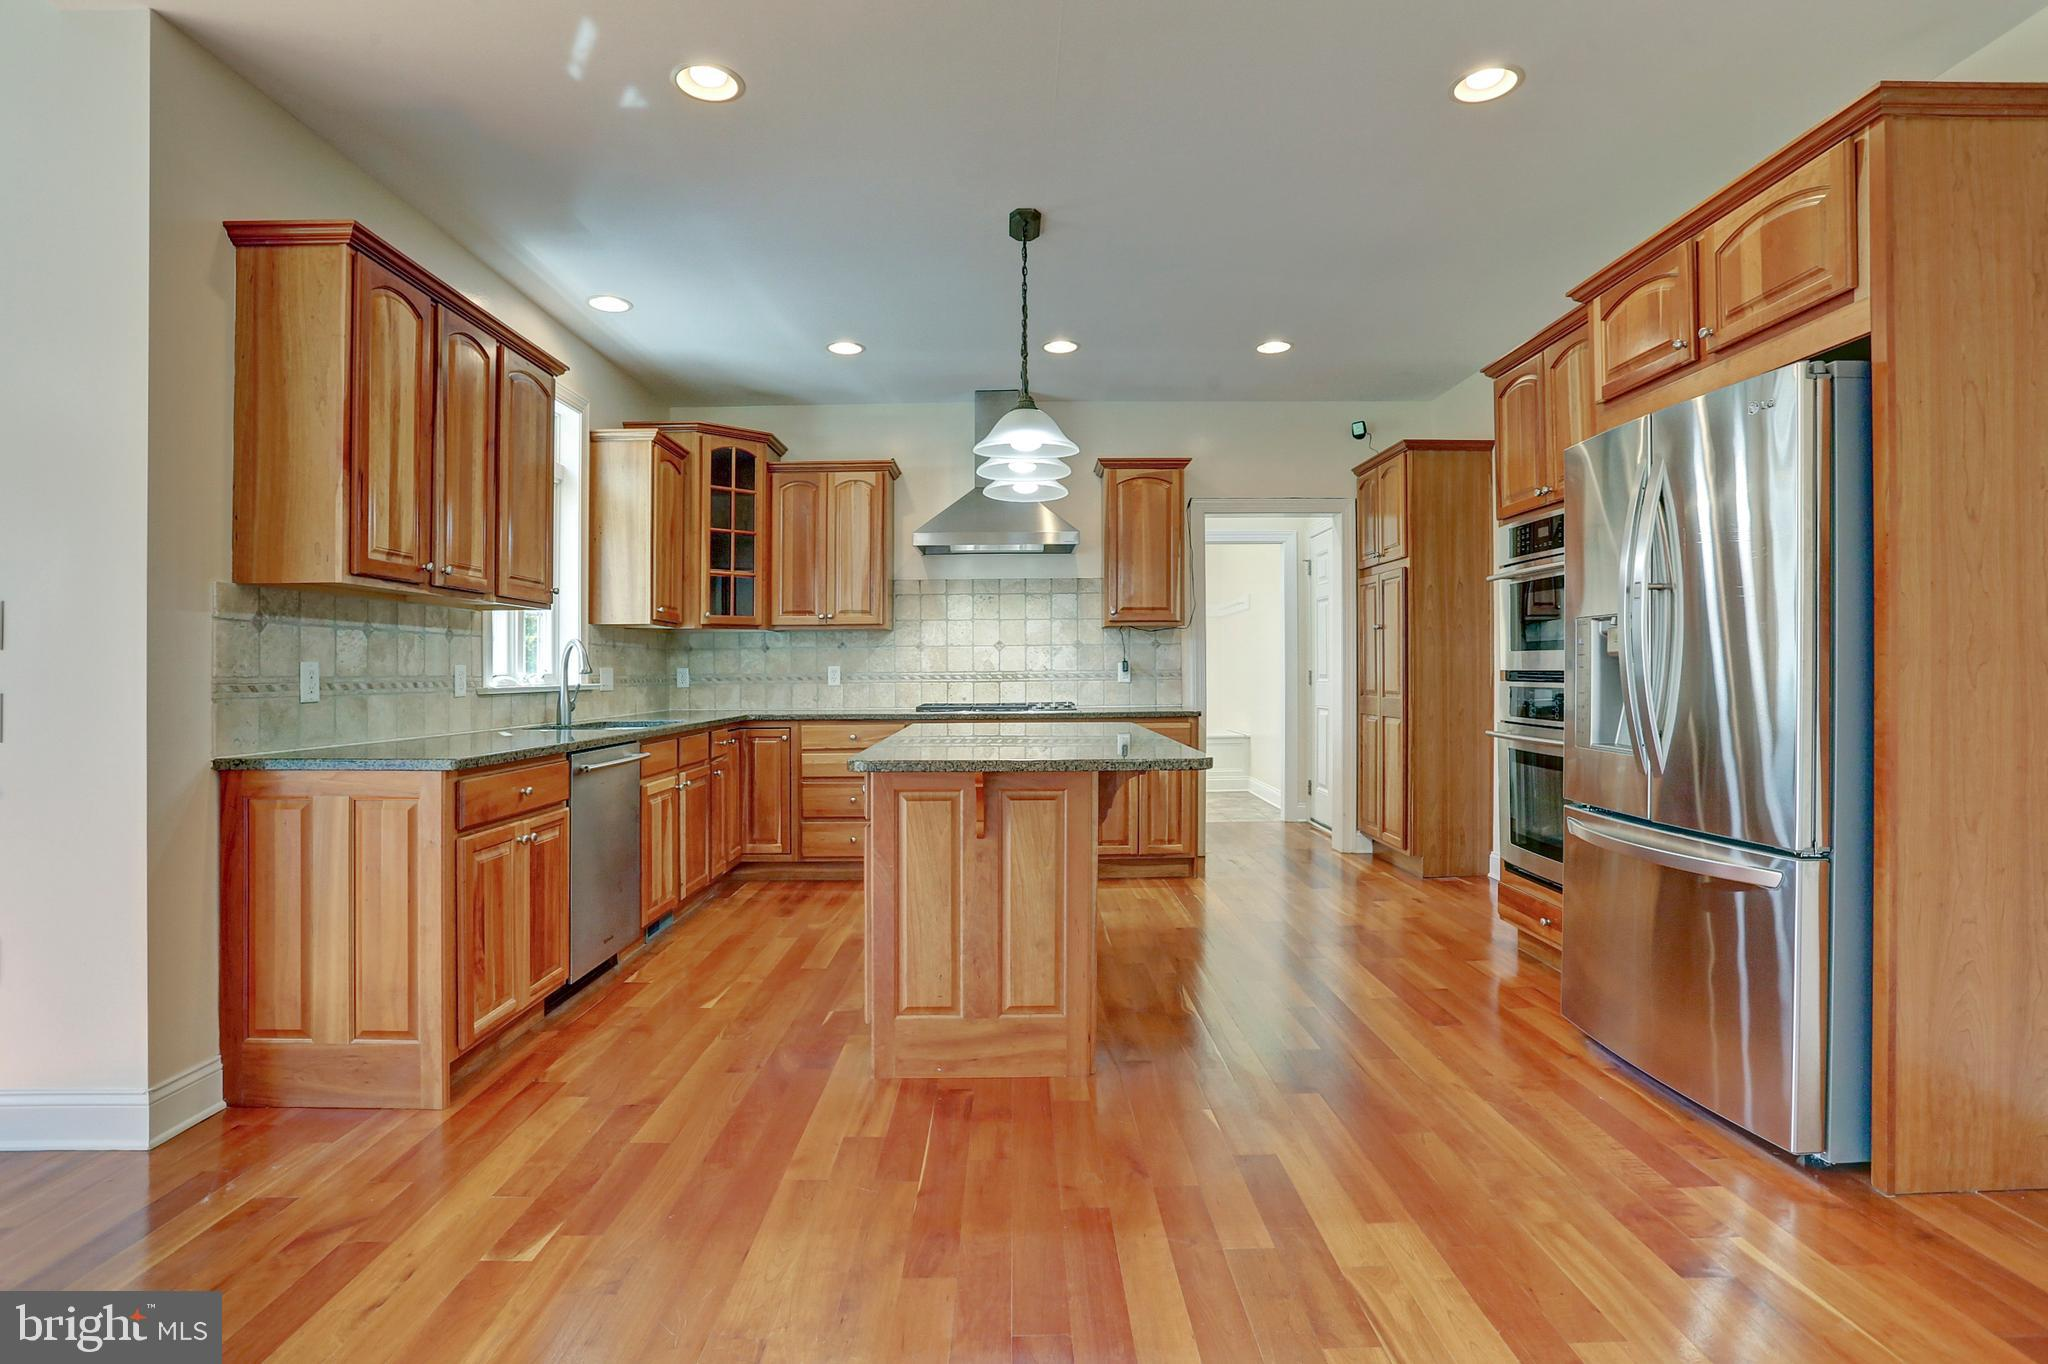 Cherry Wood Cabinets in the Beautiful Kitchen